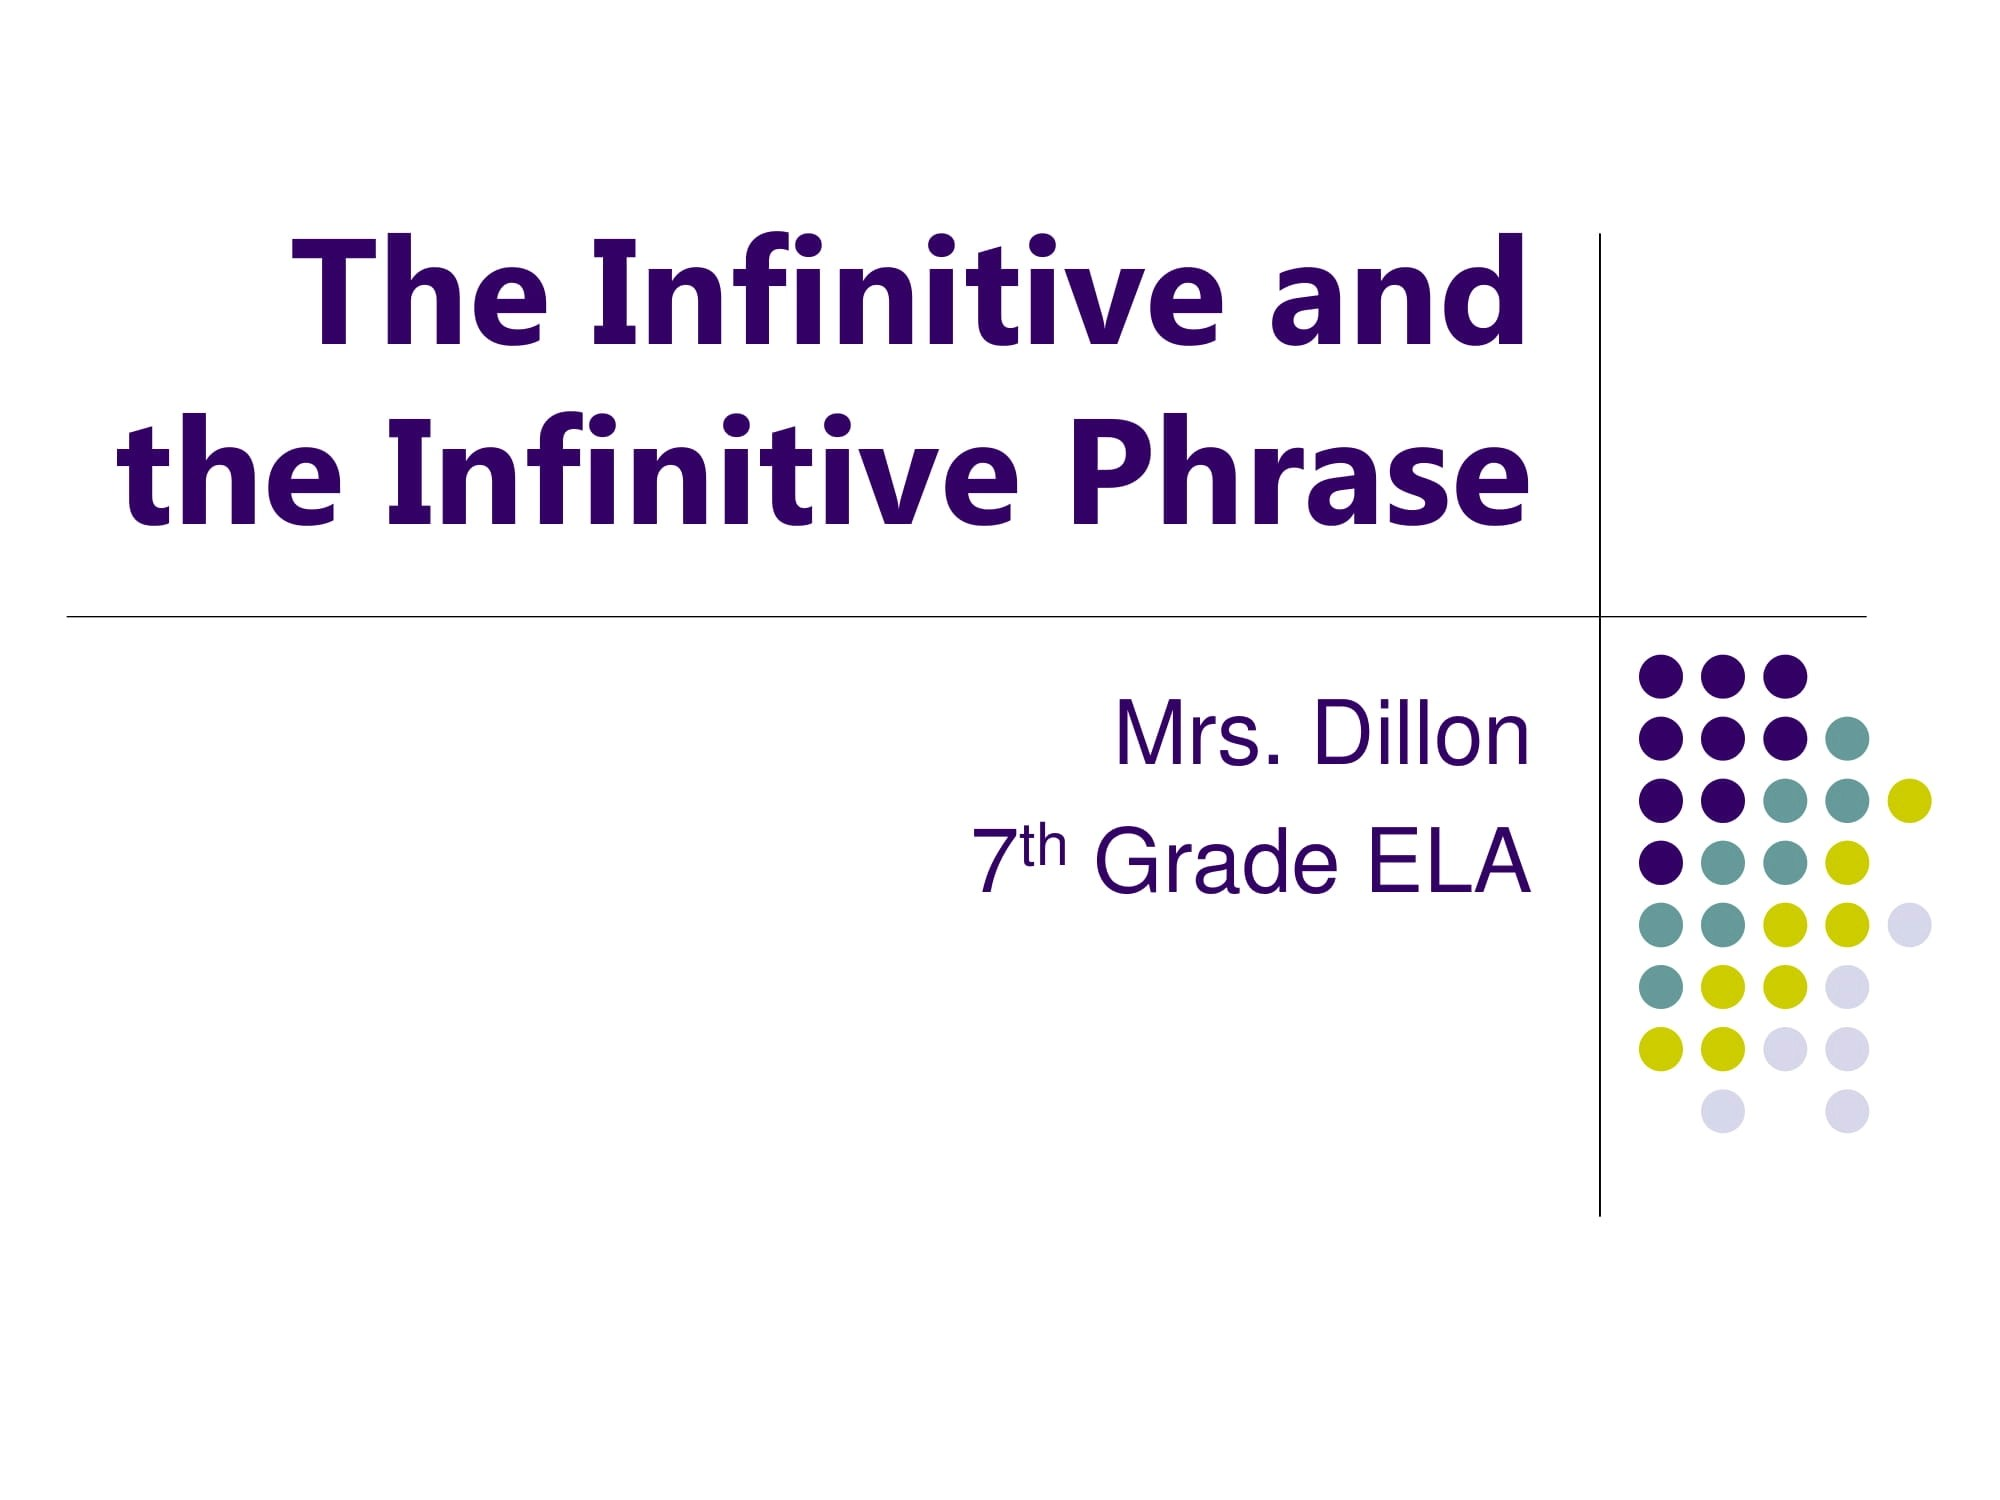 9 Infinitive Phrase Worksheets And Examples